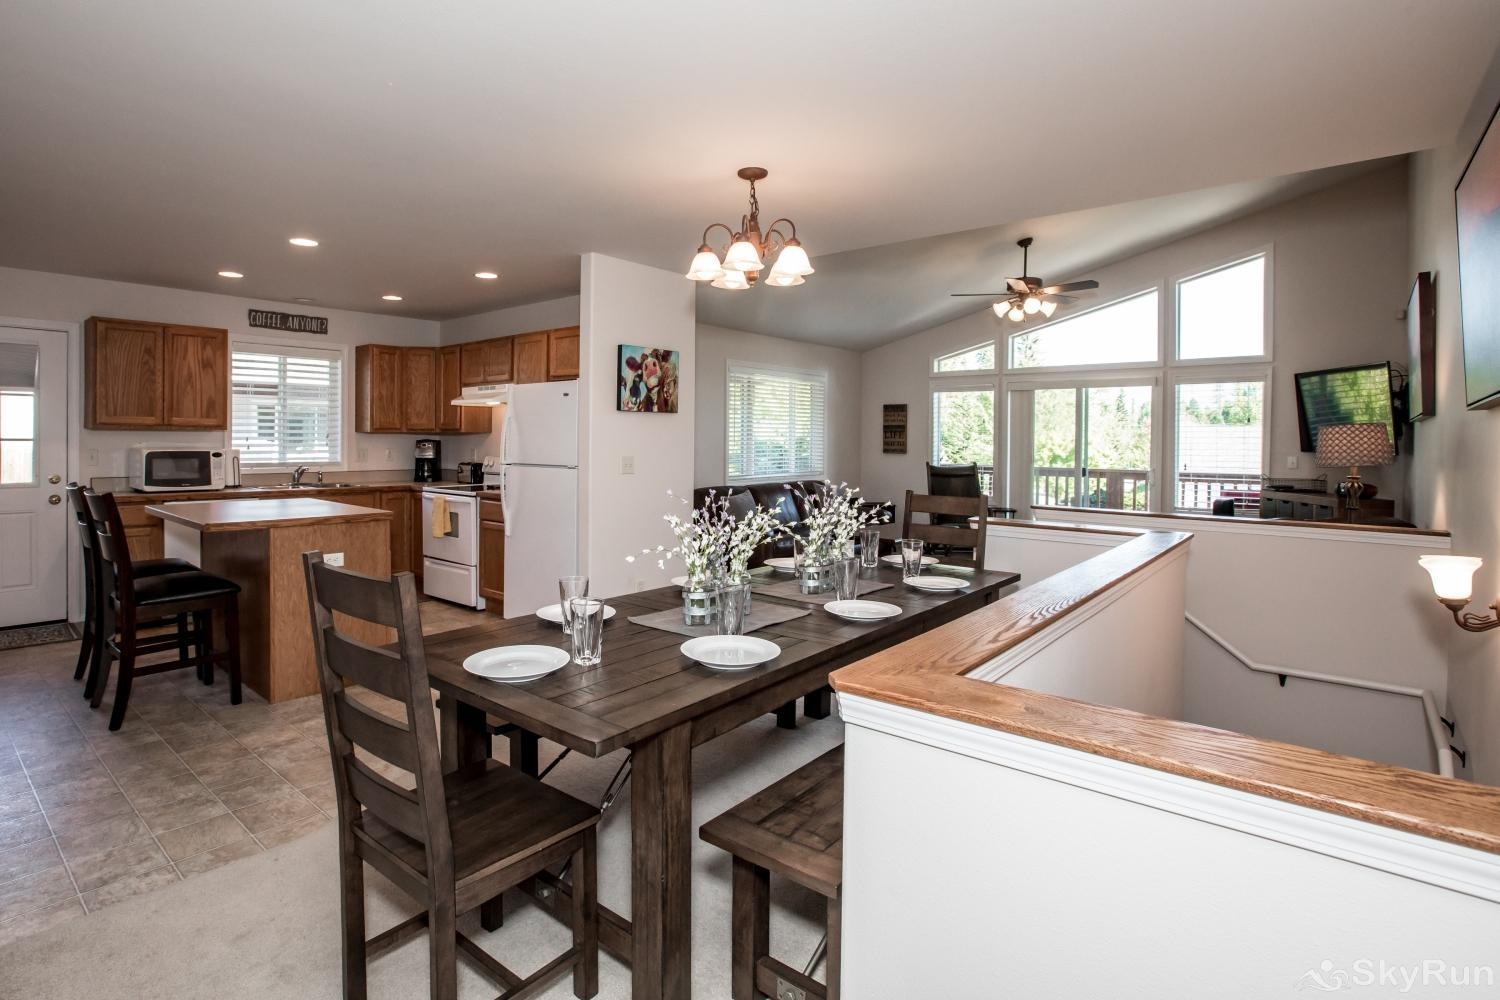 Red Fox Hollow This townhome has well stocked kitchen so you can cook a variety of meals